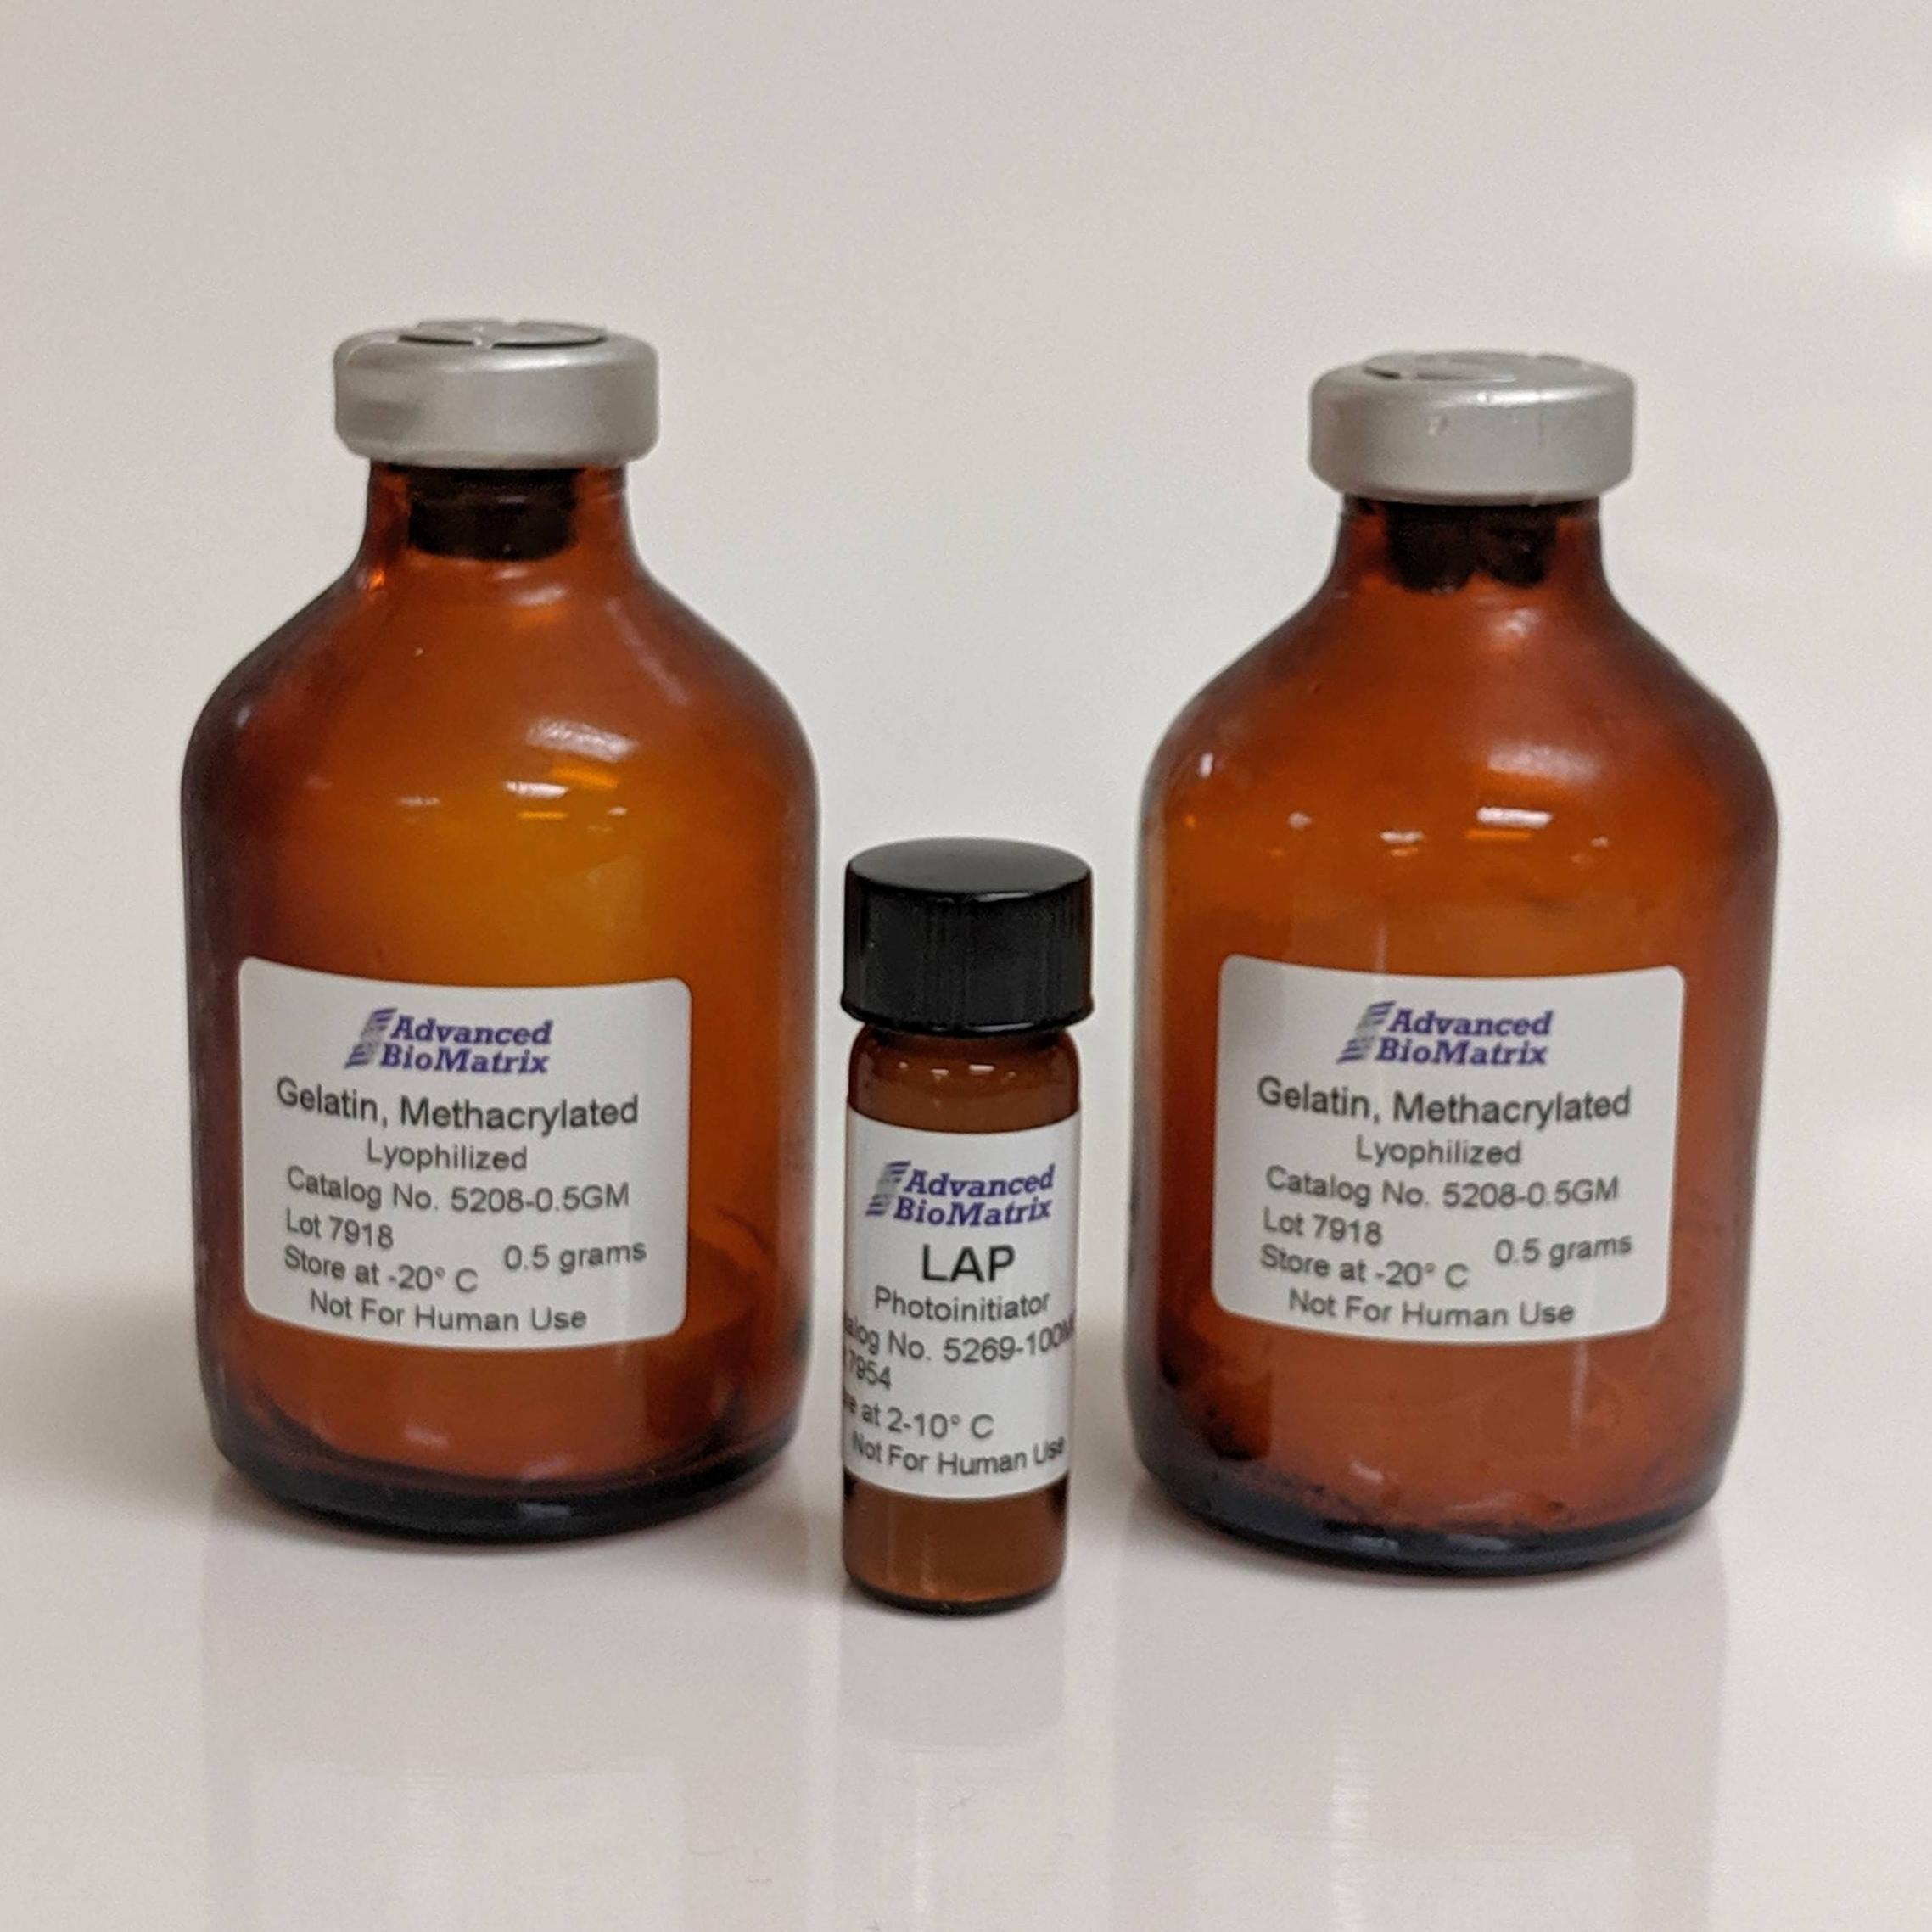 PhotoGel GelMa methacrylated Gelatin from Advanced BioMatrix